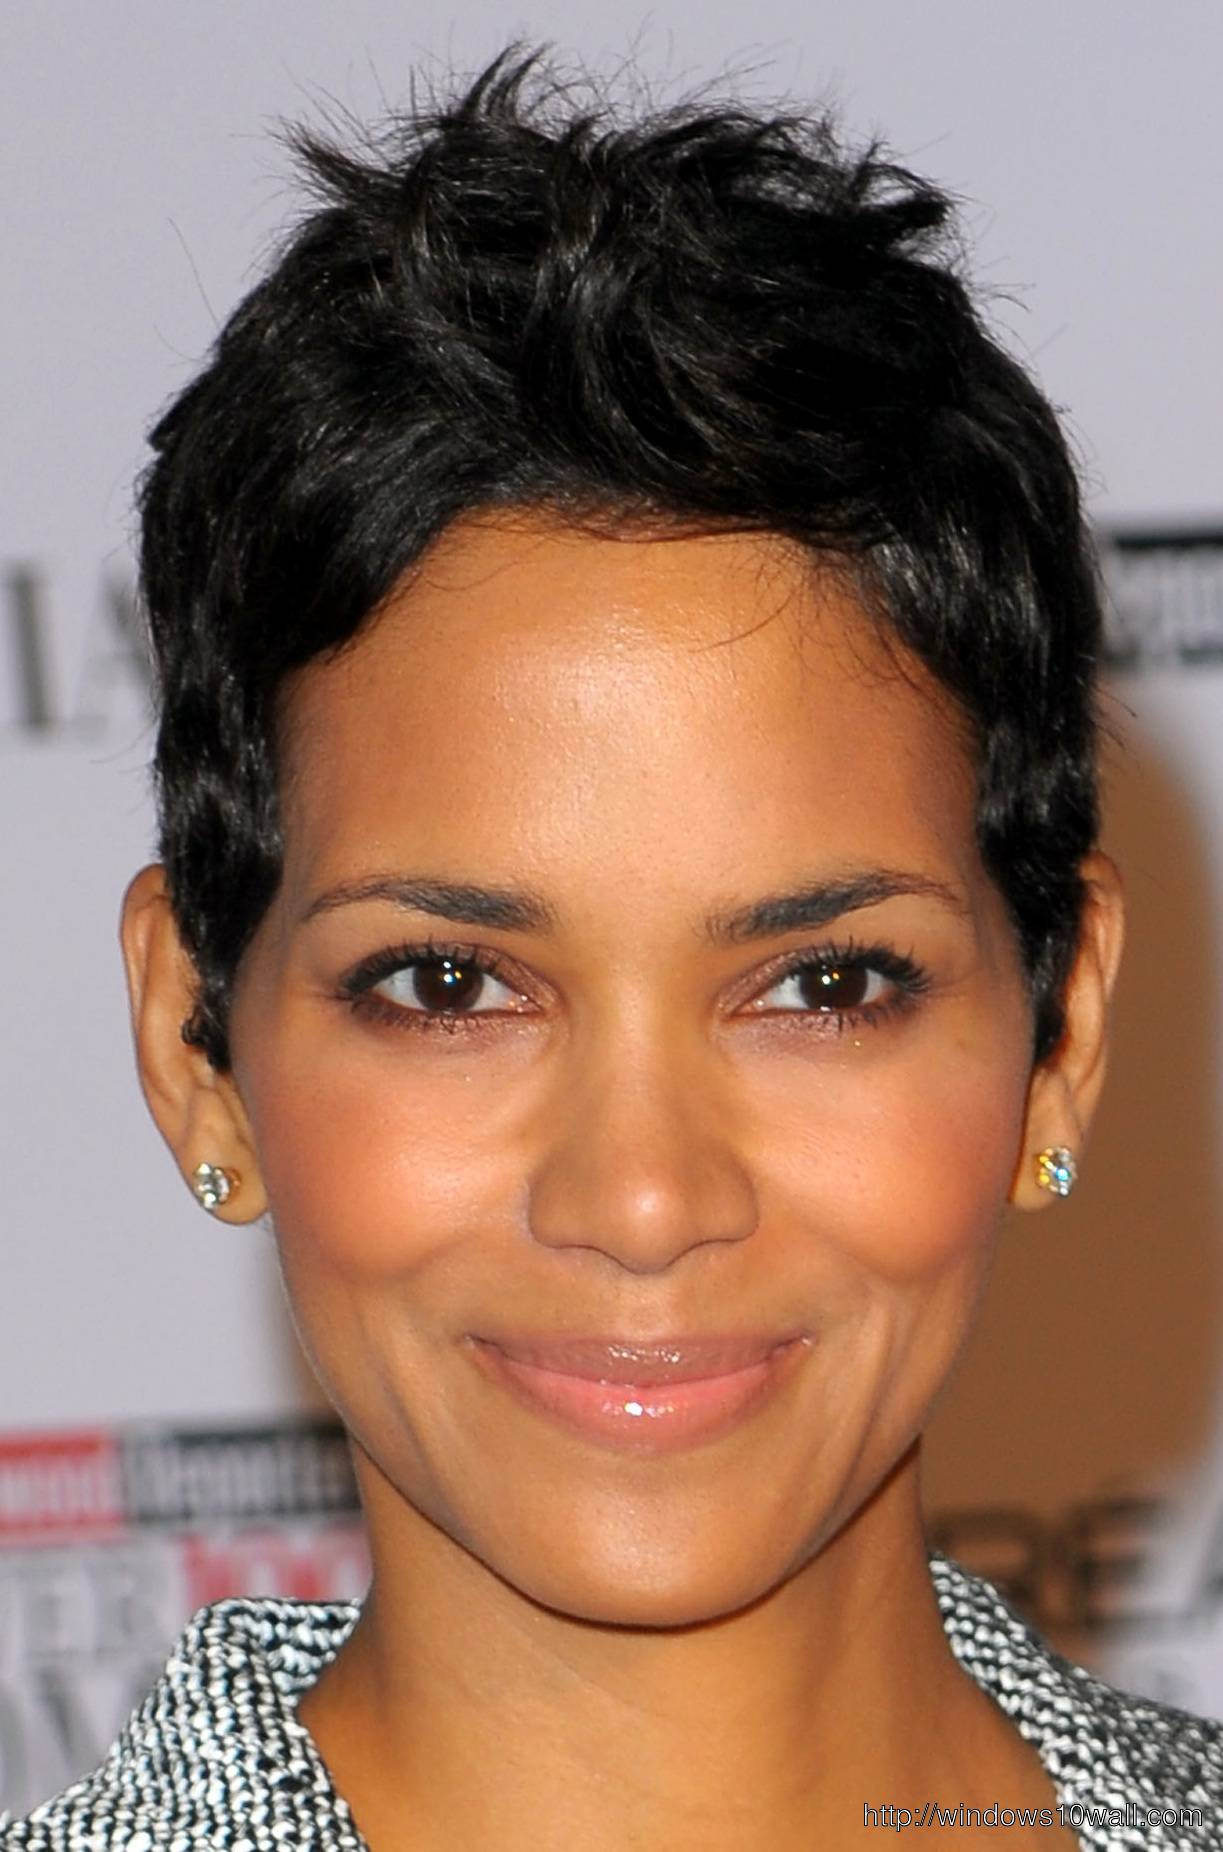 pixie-cuts-hairstyle-for-black-woman-background-wallpaper